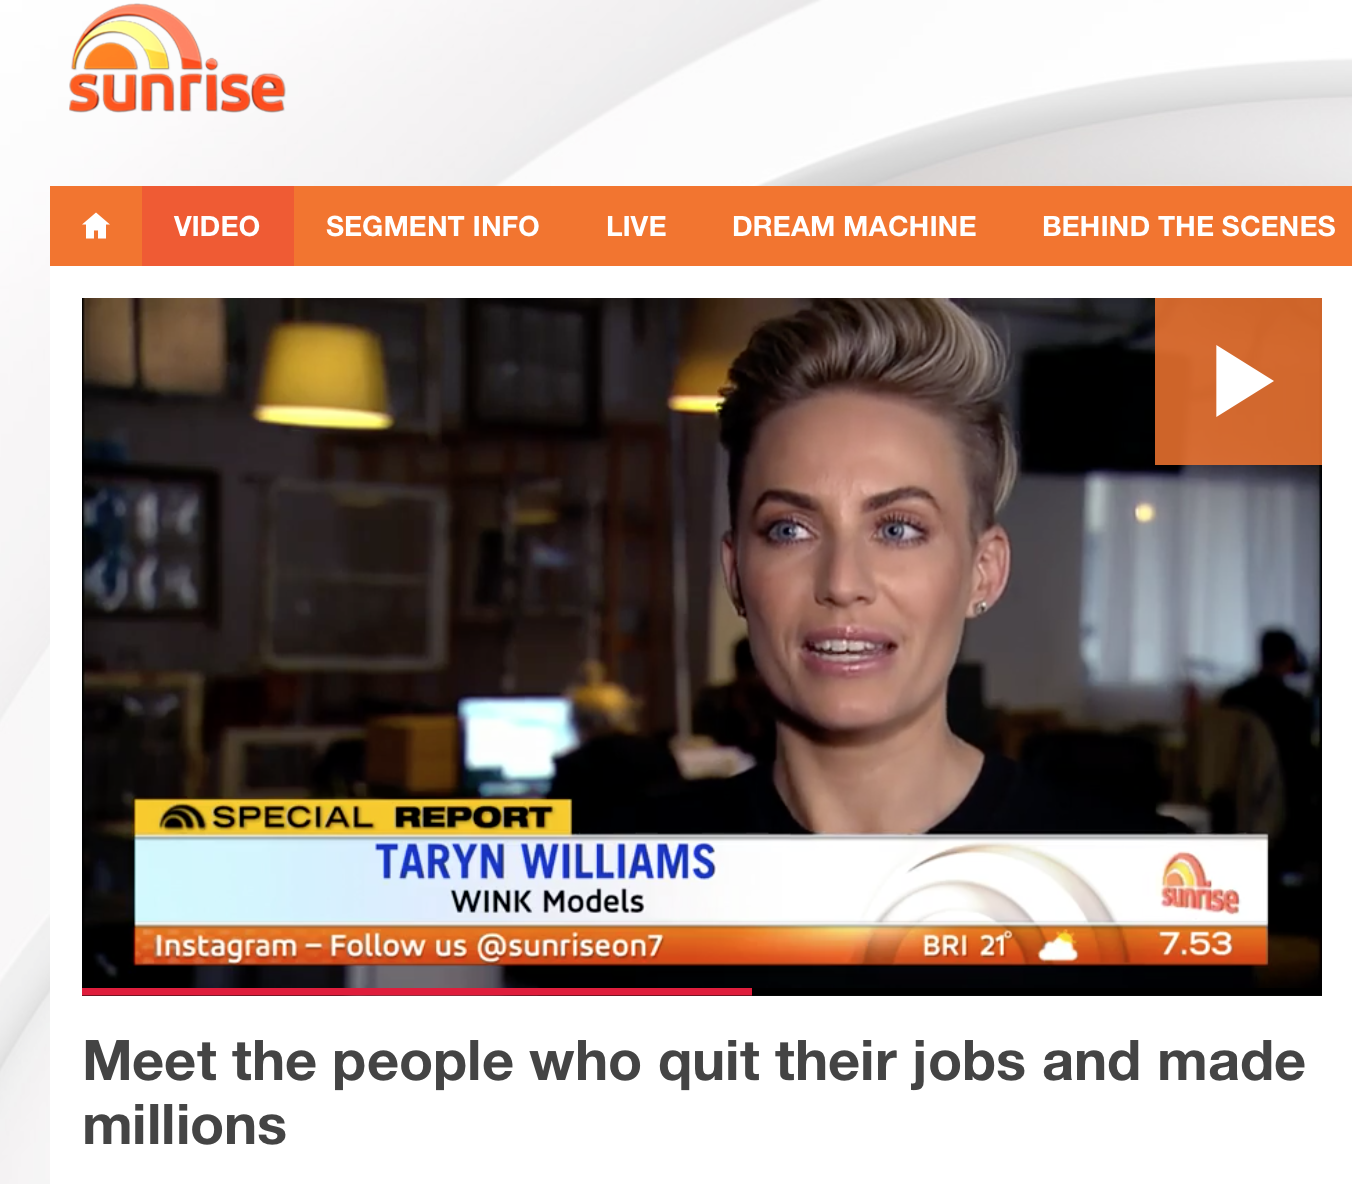 https://au.tv.yahoo.com/sunrise/video/watch/32244468/meet-the-people-who-quit-their-jobs-and-made-millions/?cmp=st#page2